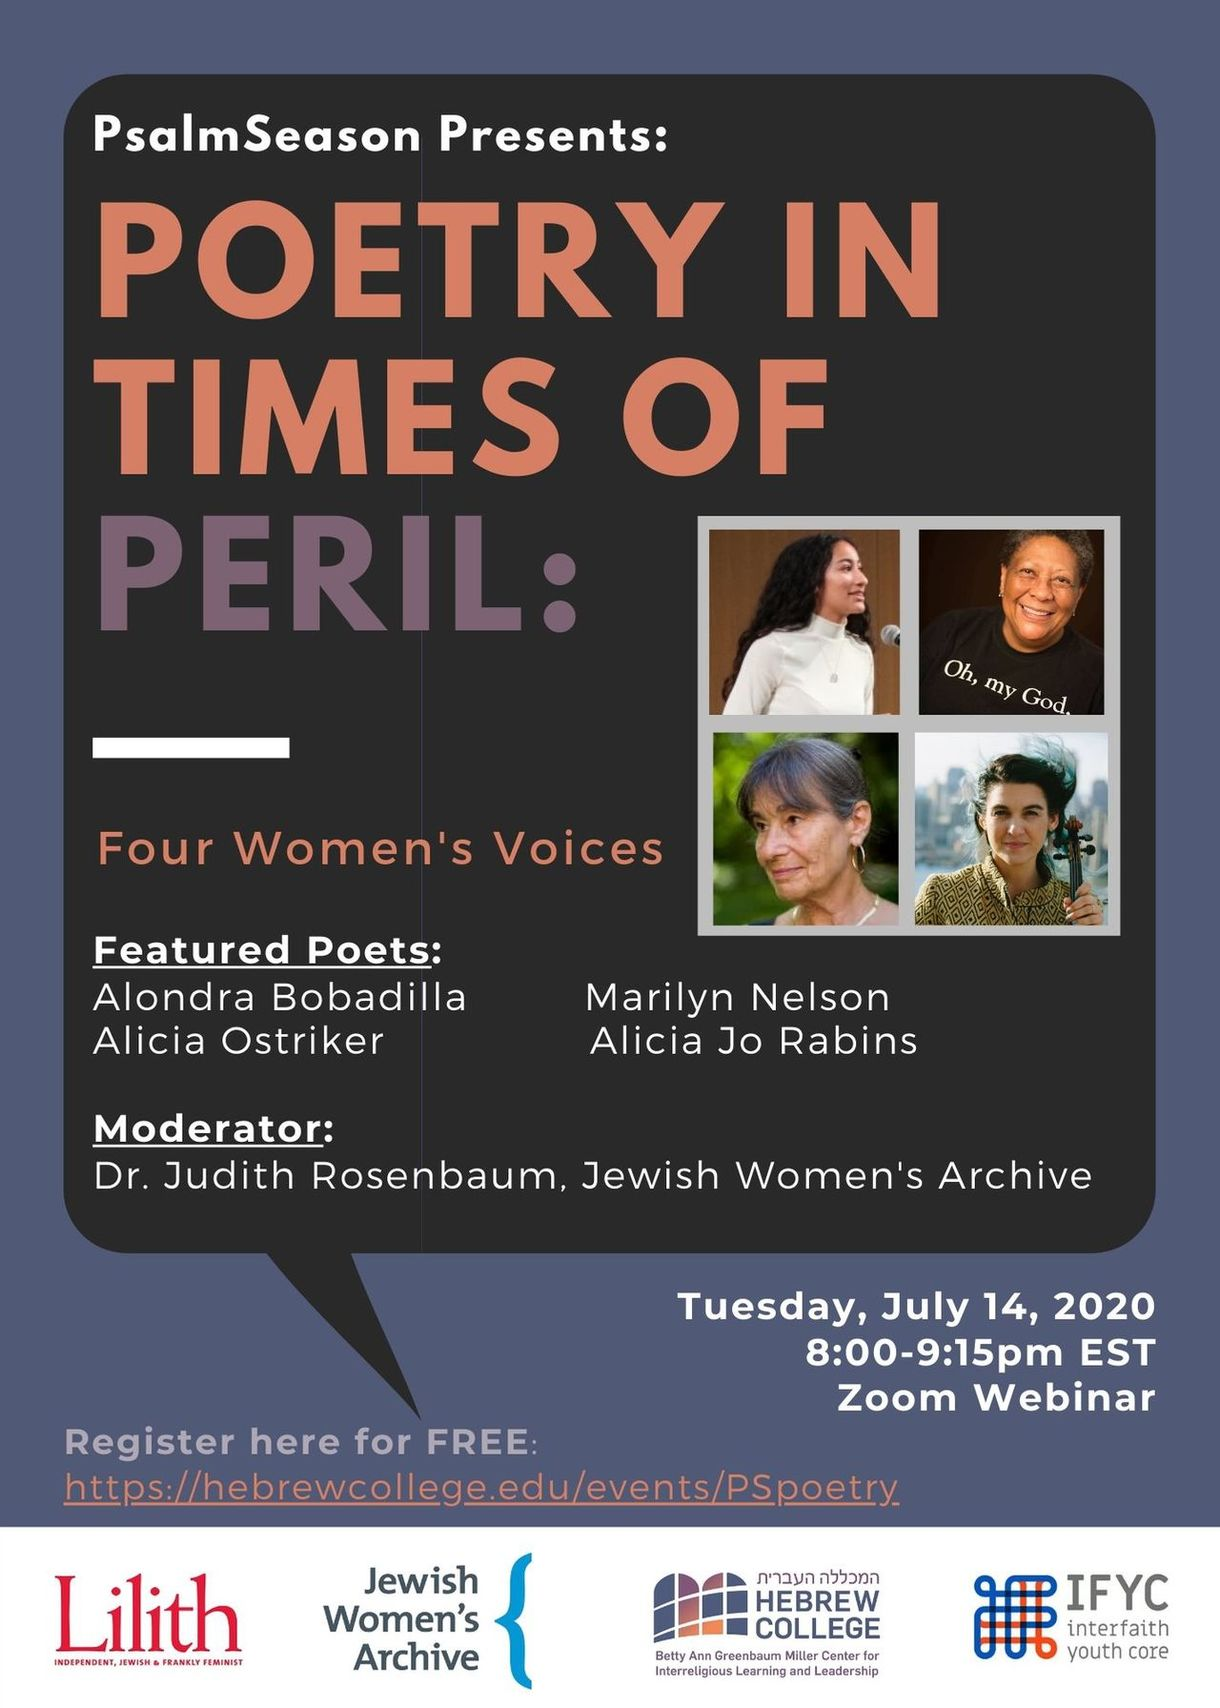 Poetry in Times of Peril: Four Women's Voices - Tuesday, July 10 @ 8pm EST